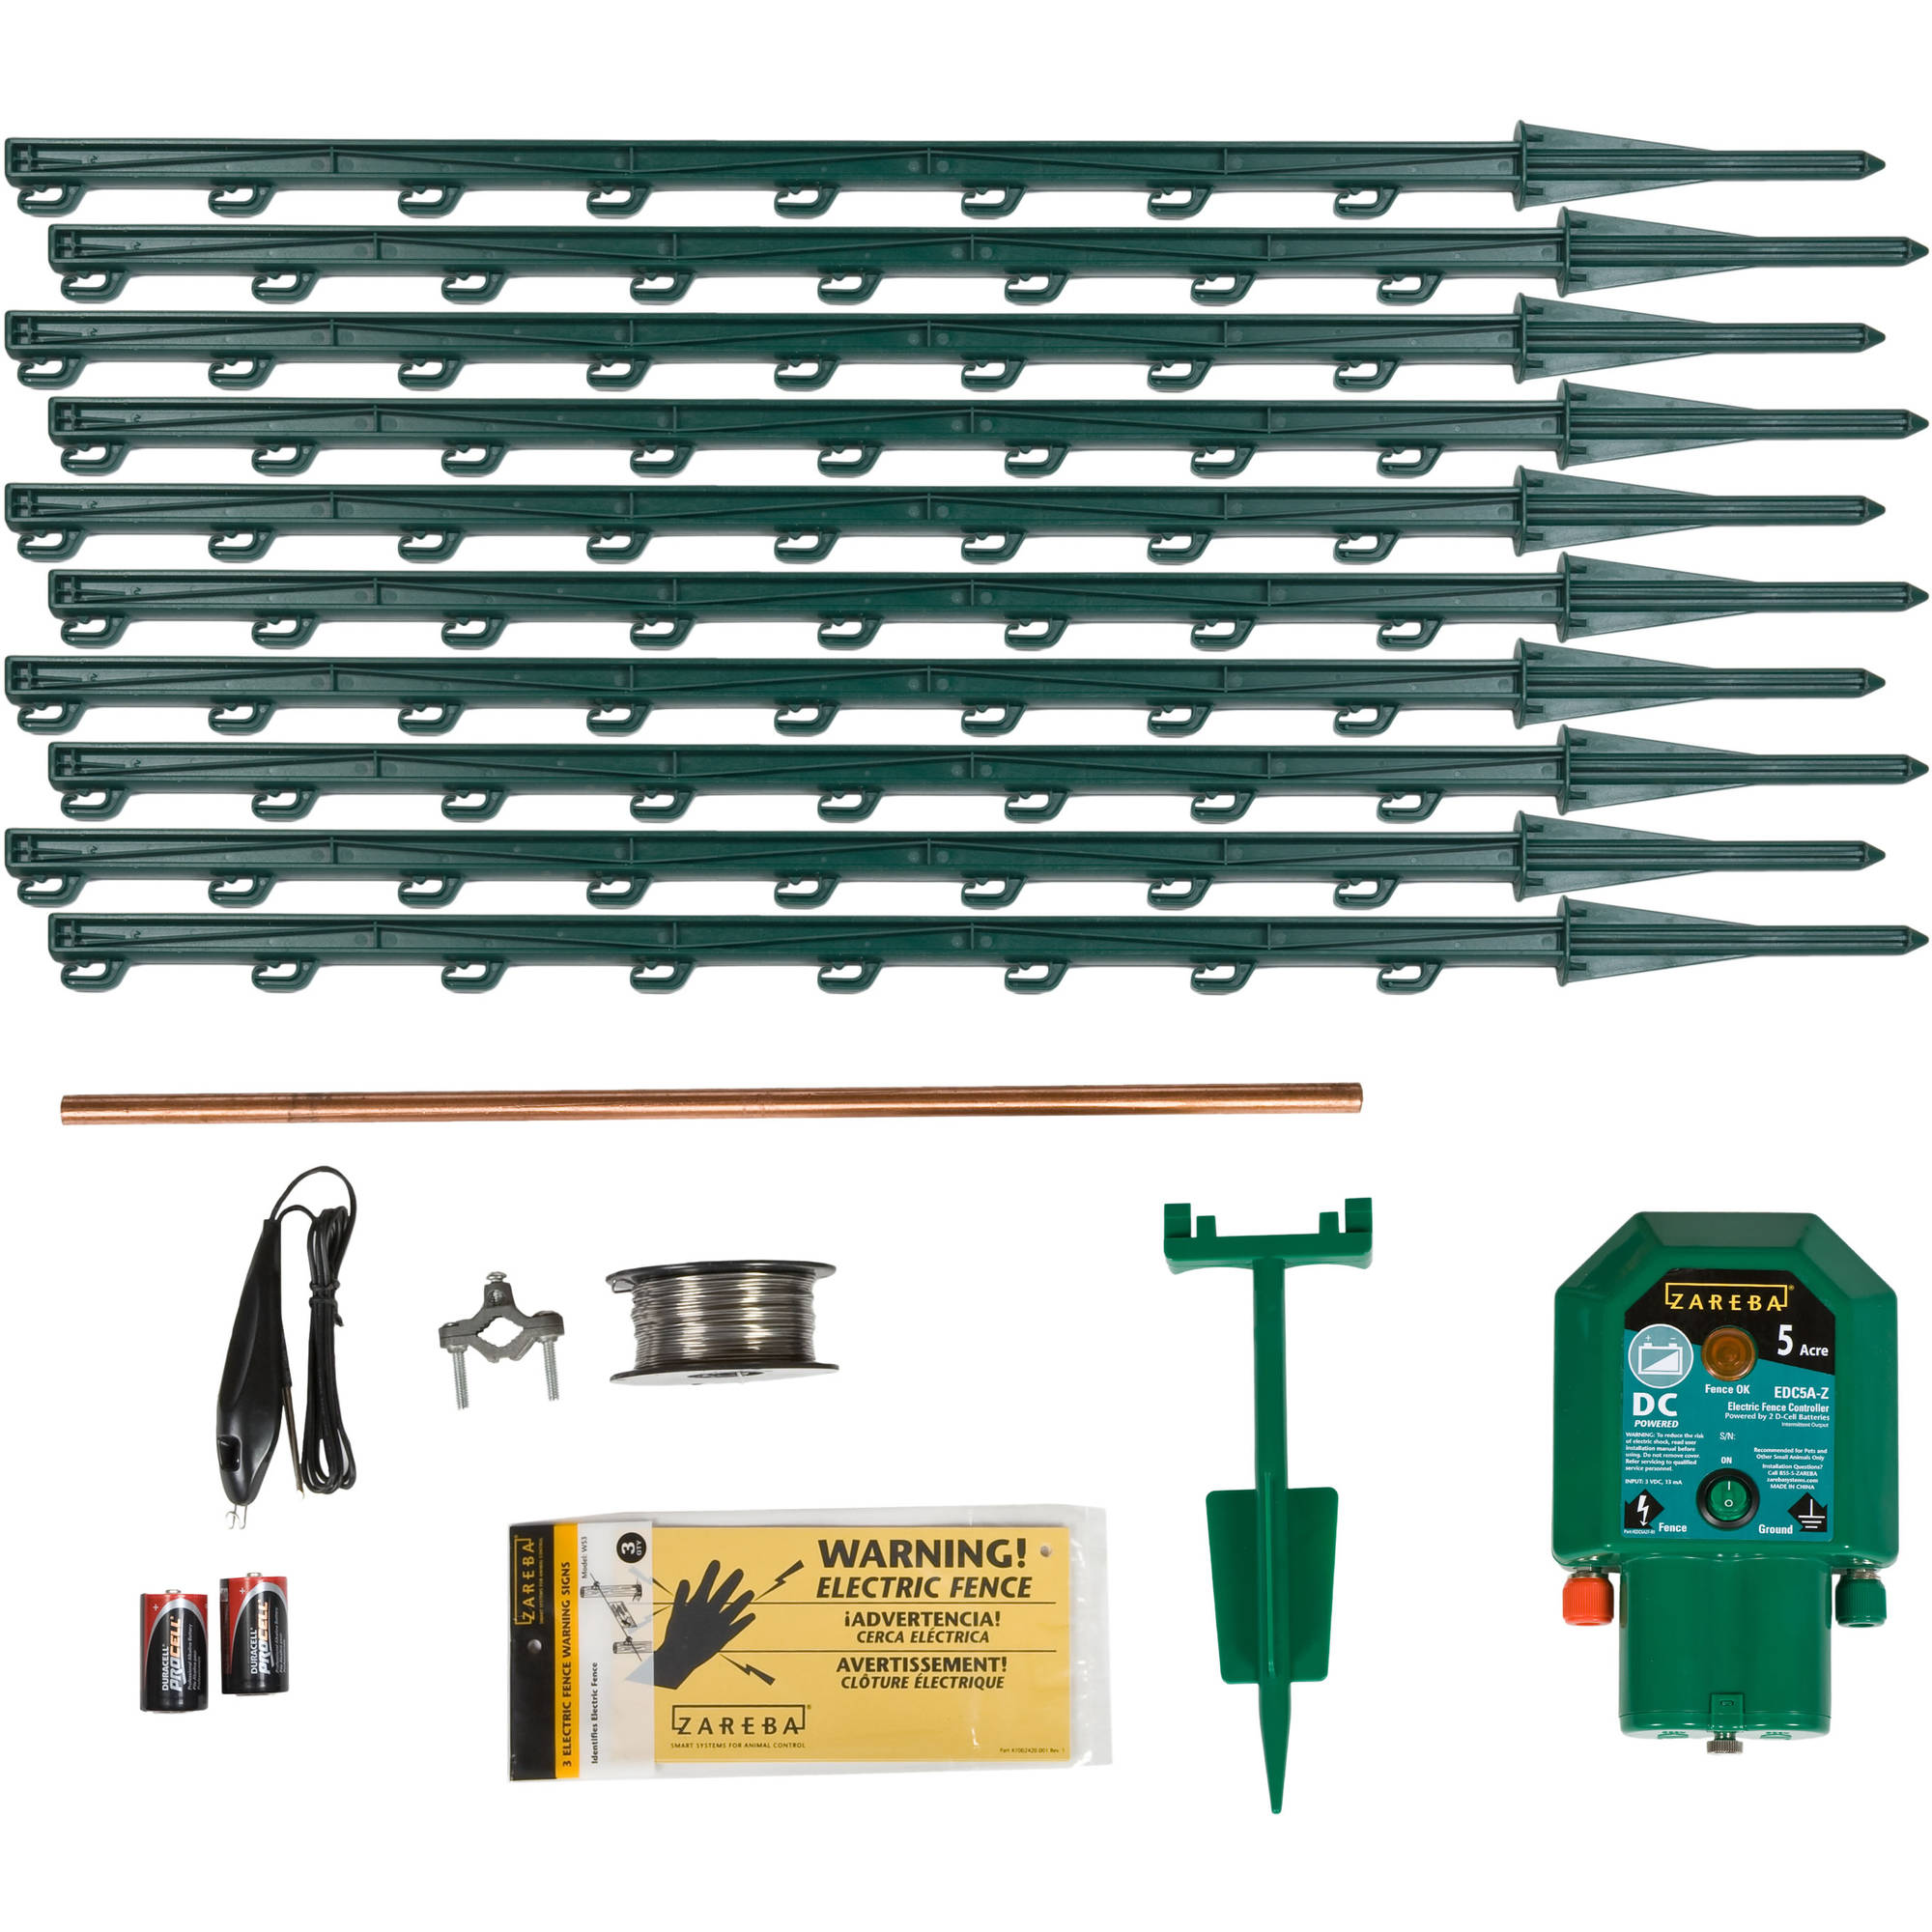 Fence Posts & Accessories